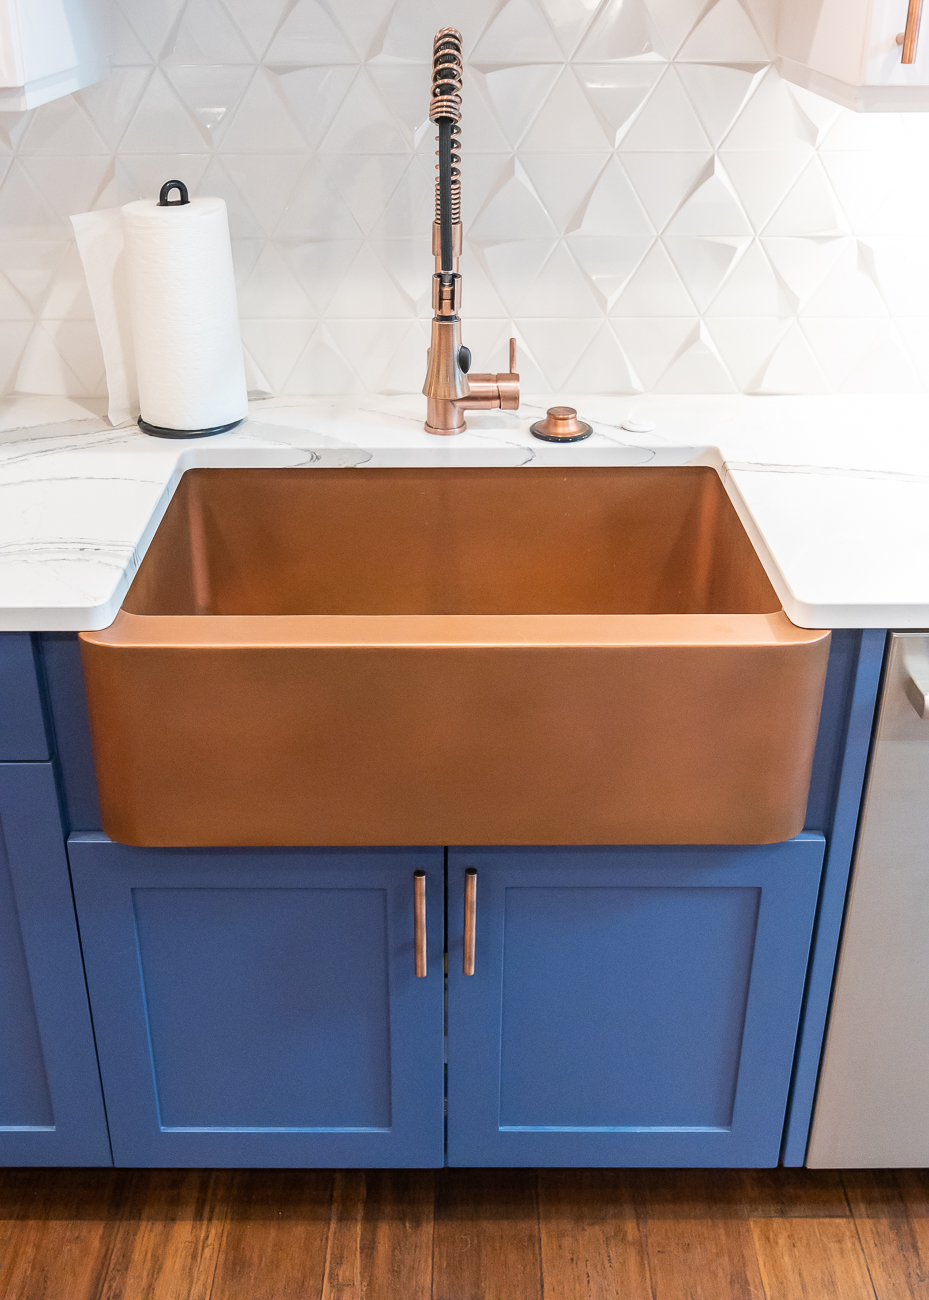 The sink is Signature Hardware Kembla in Antique Copper. / Image: Phil Armstrong, Cincinnati Refined // Published: 6.5.20